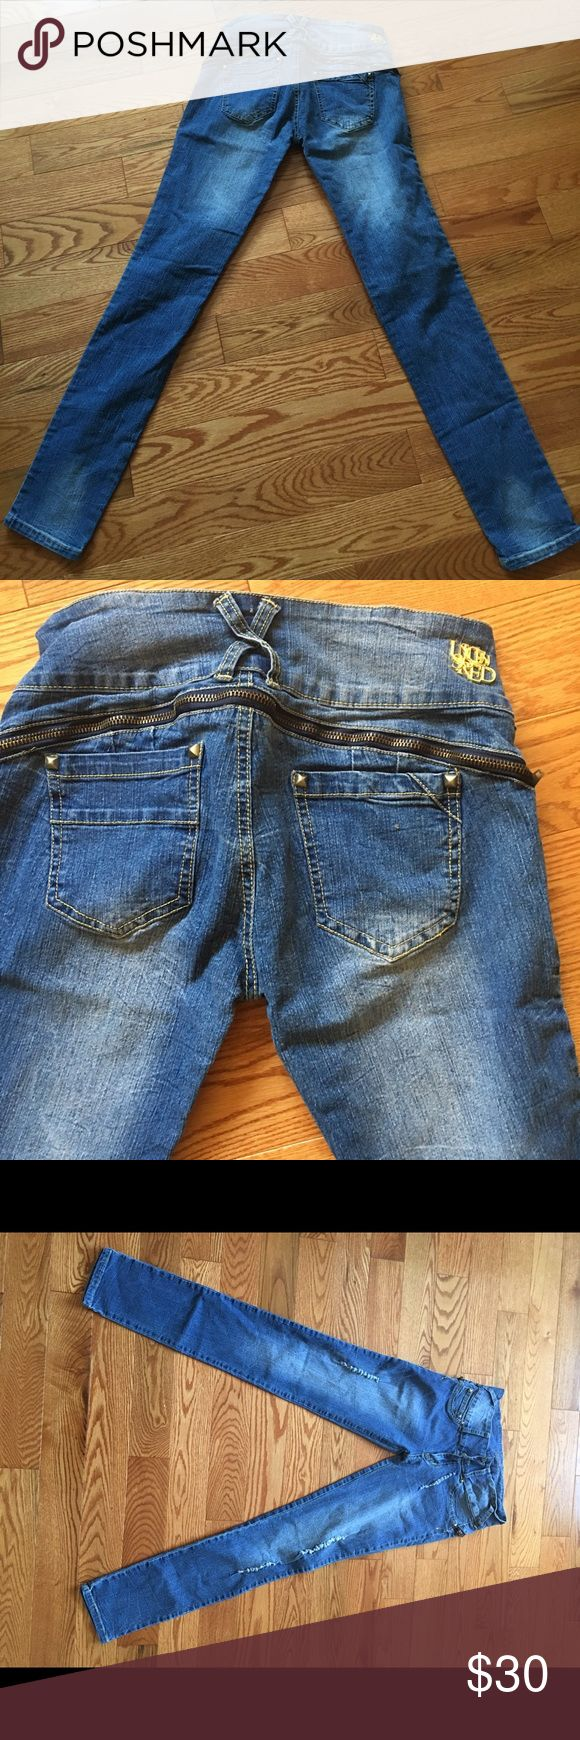 Original Colombian women jeans forms the butt Original Colombian women jeans forms the butt automatically  Colombian size 10 - us size 28 Brand new  Before $100 now $30 Columbian Jeans Straight Leg